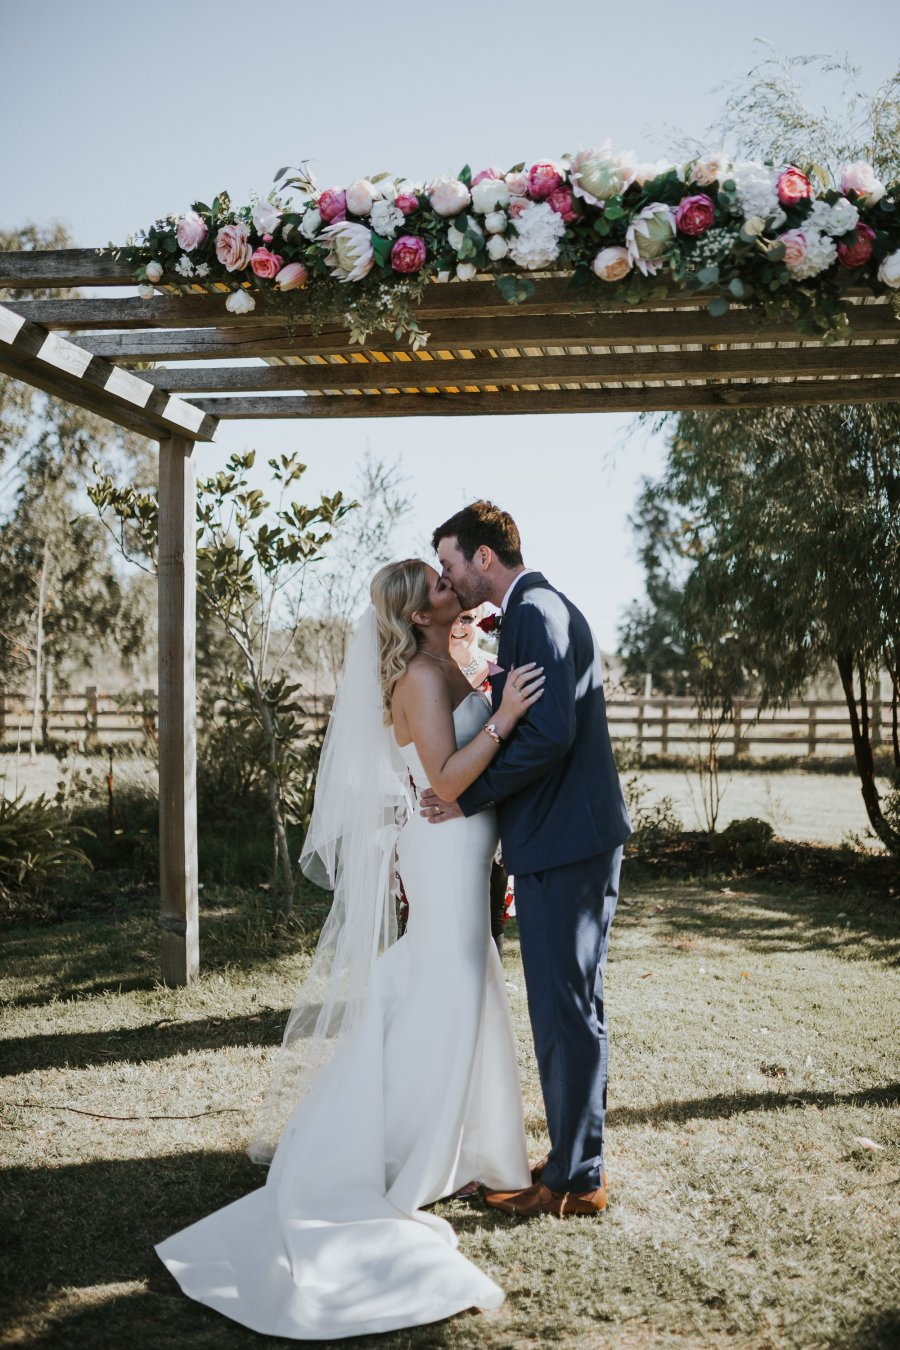 Perth Wedding Photographer | Ebony Blush Photography | Zoe Theiadore | K+T528